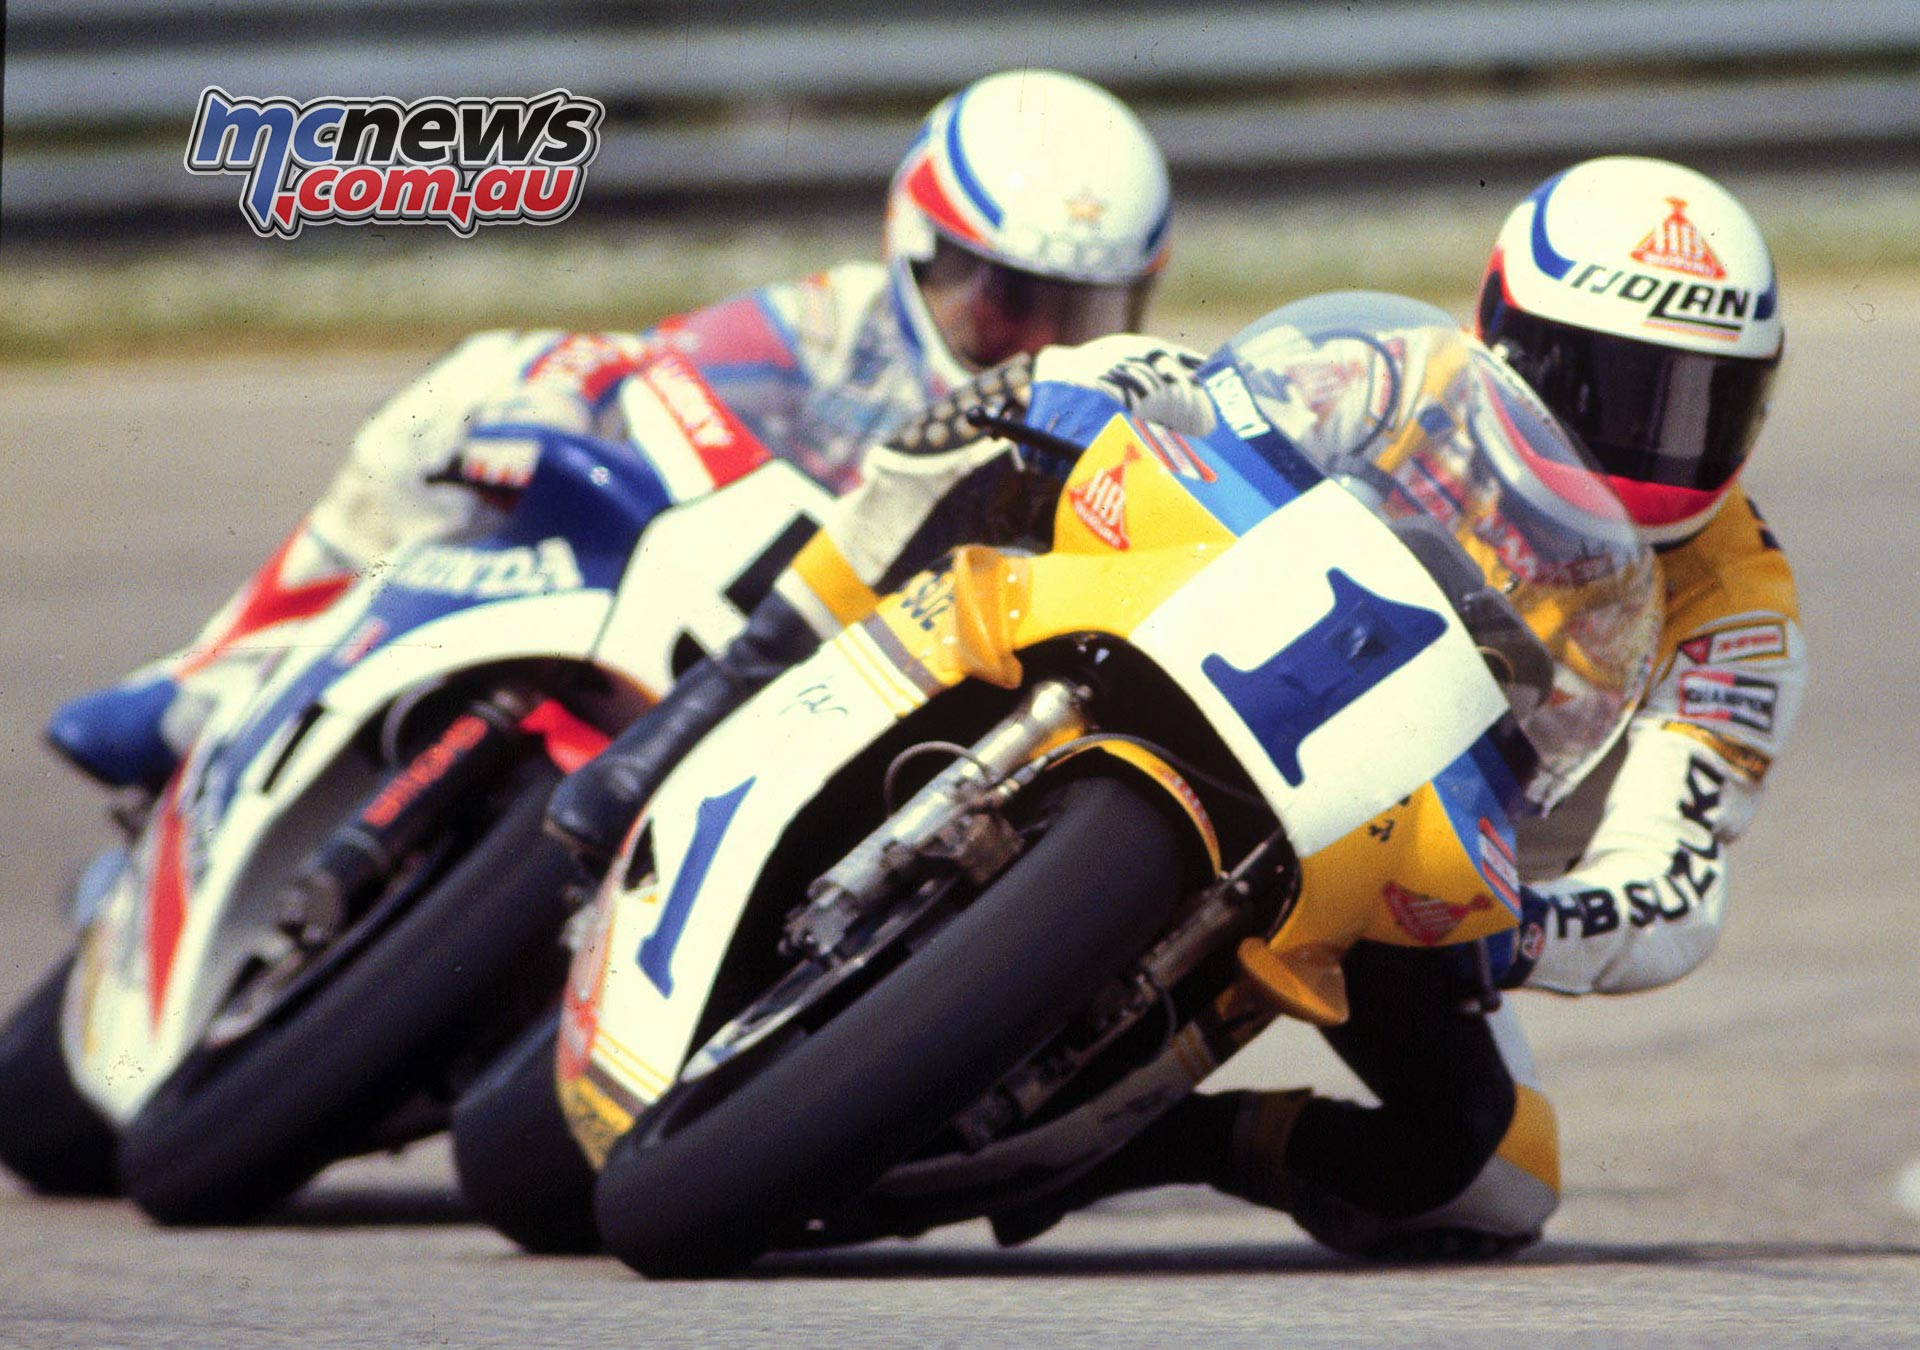 Uncini and Criville | MotoGP Legends | MCNews.com.au